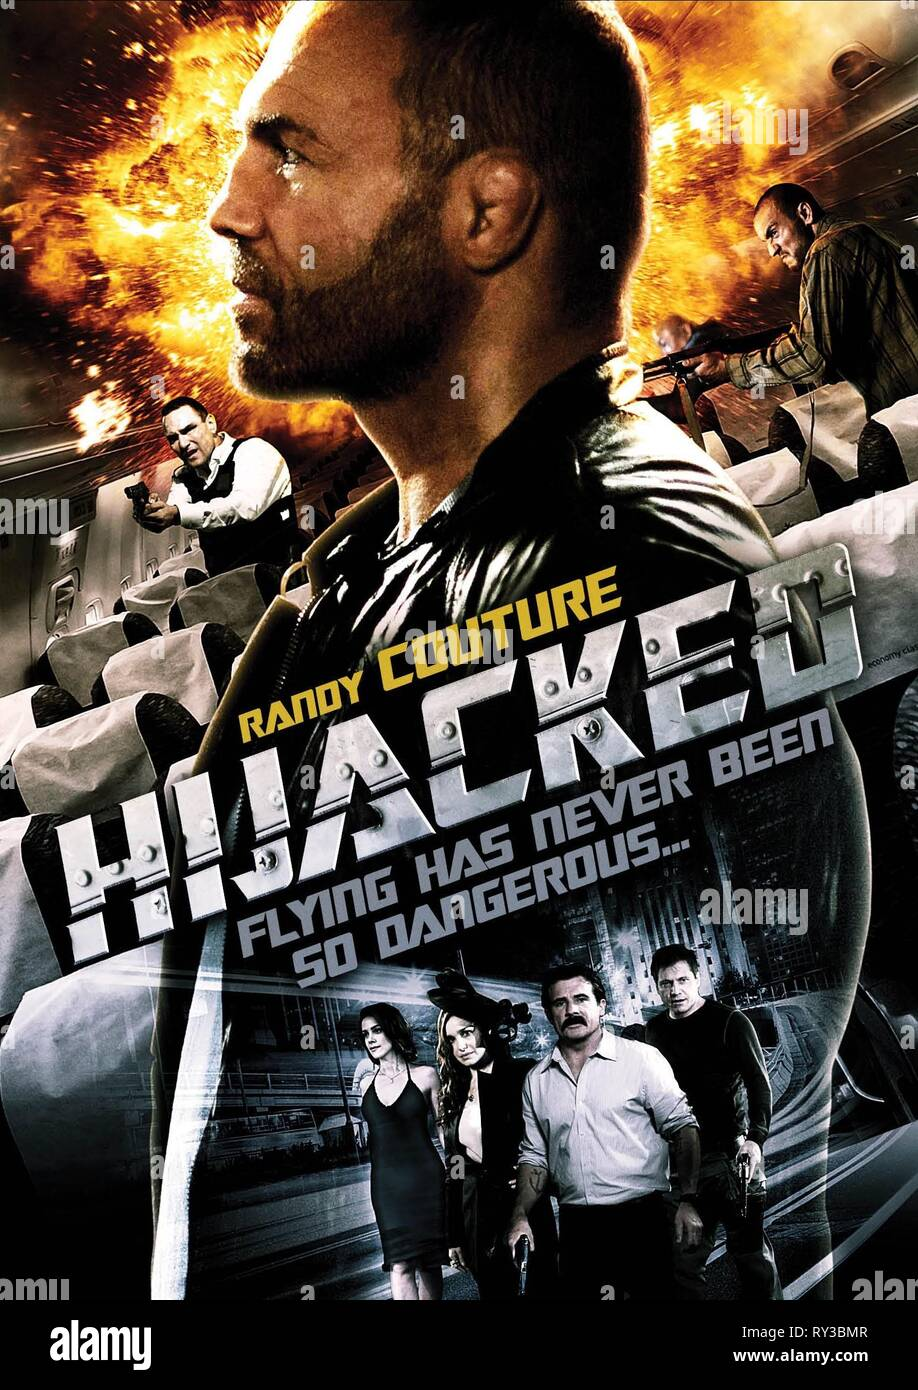 RANDY COUTURE POSTER, HIJACKED, 2012 - Stock Image